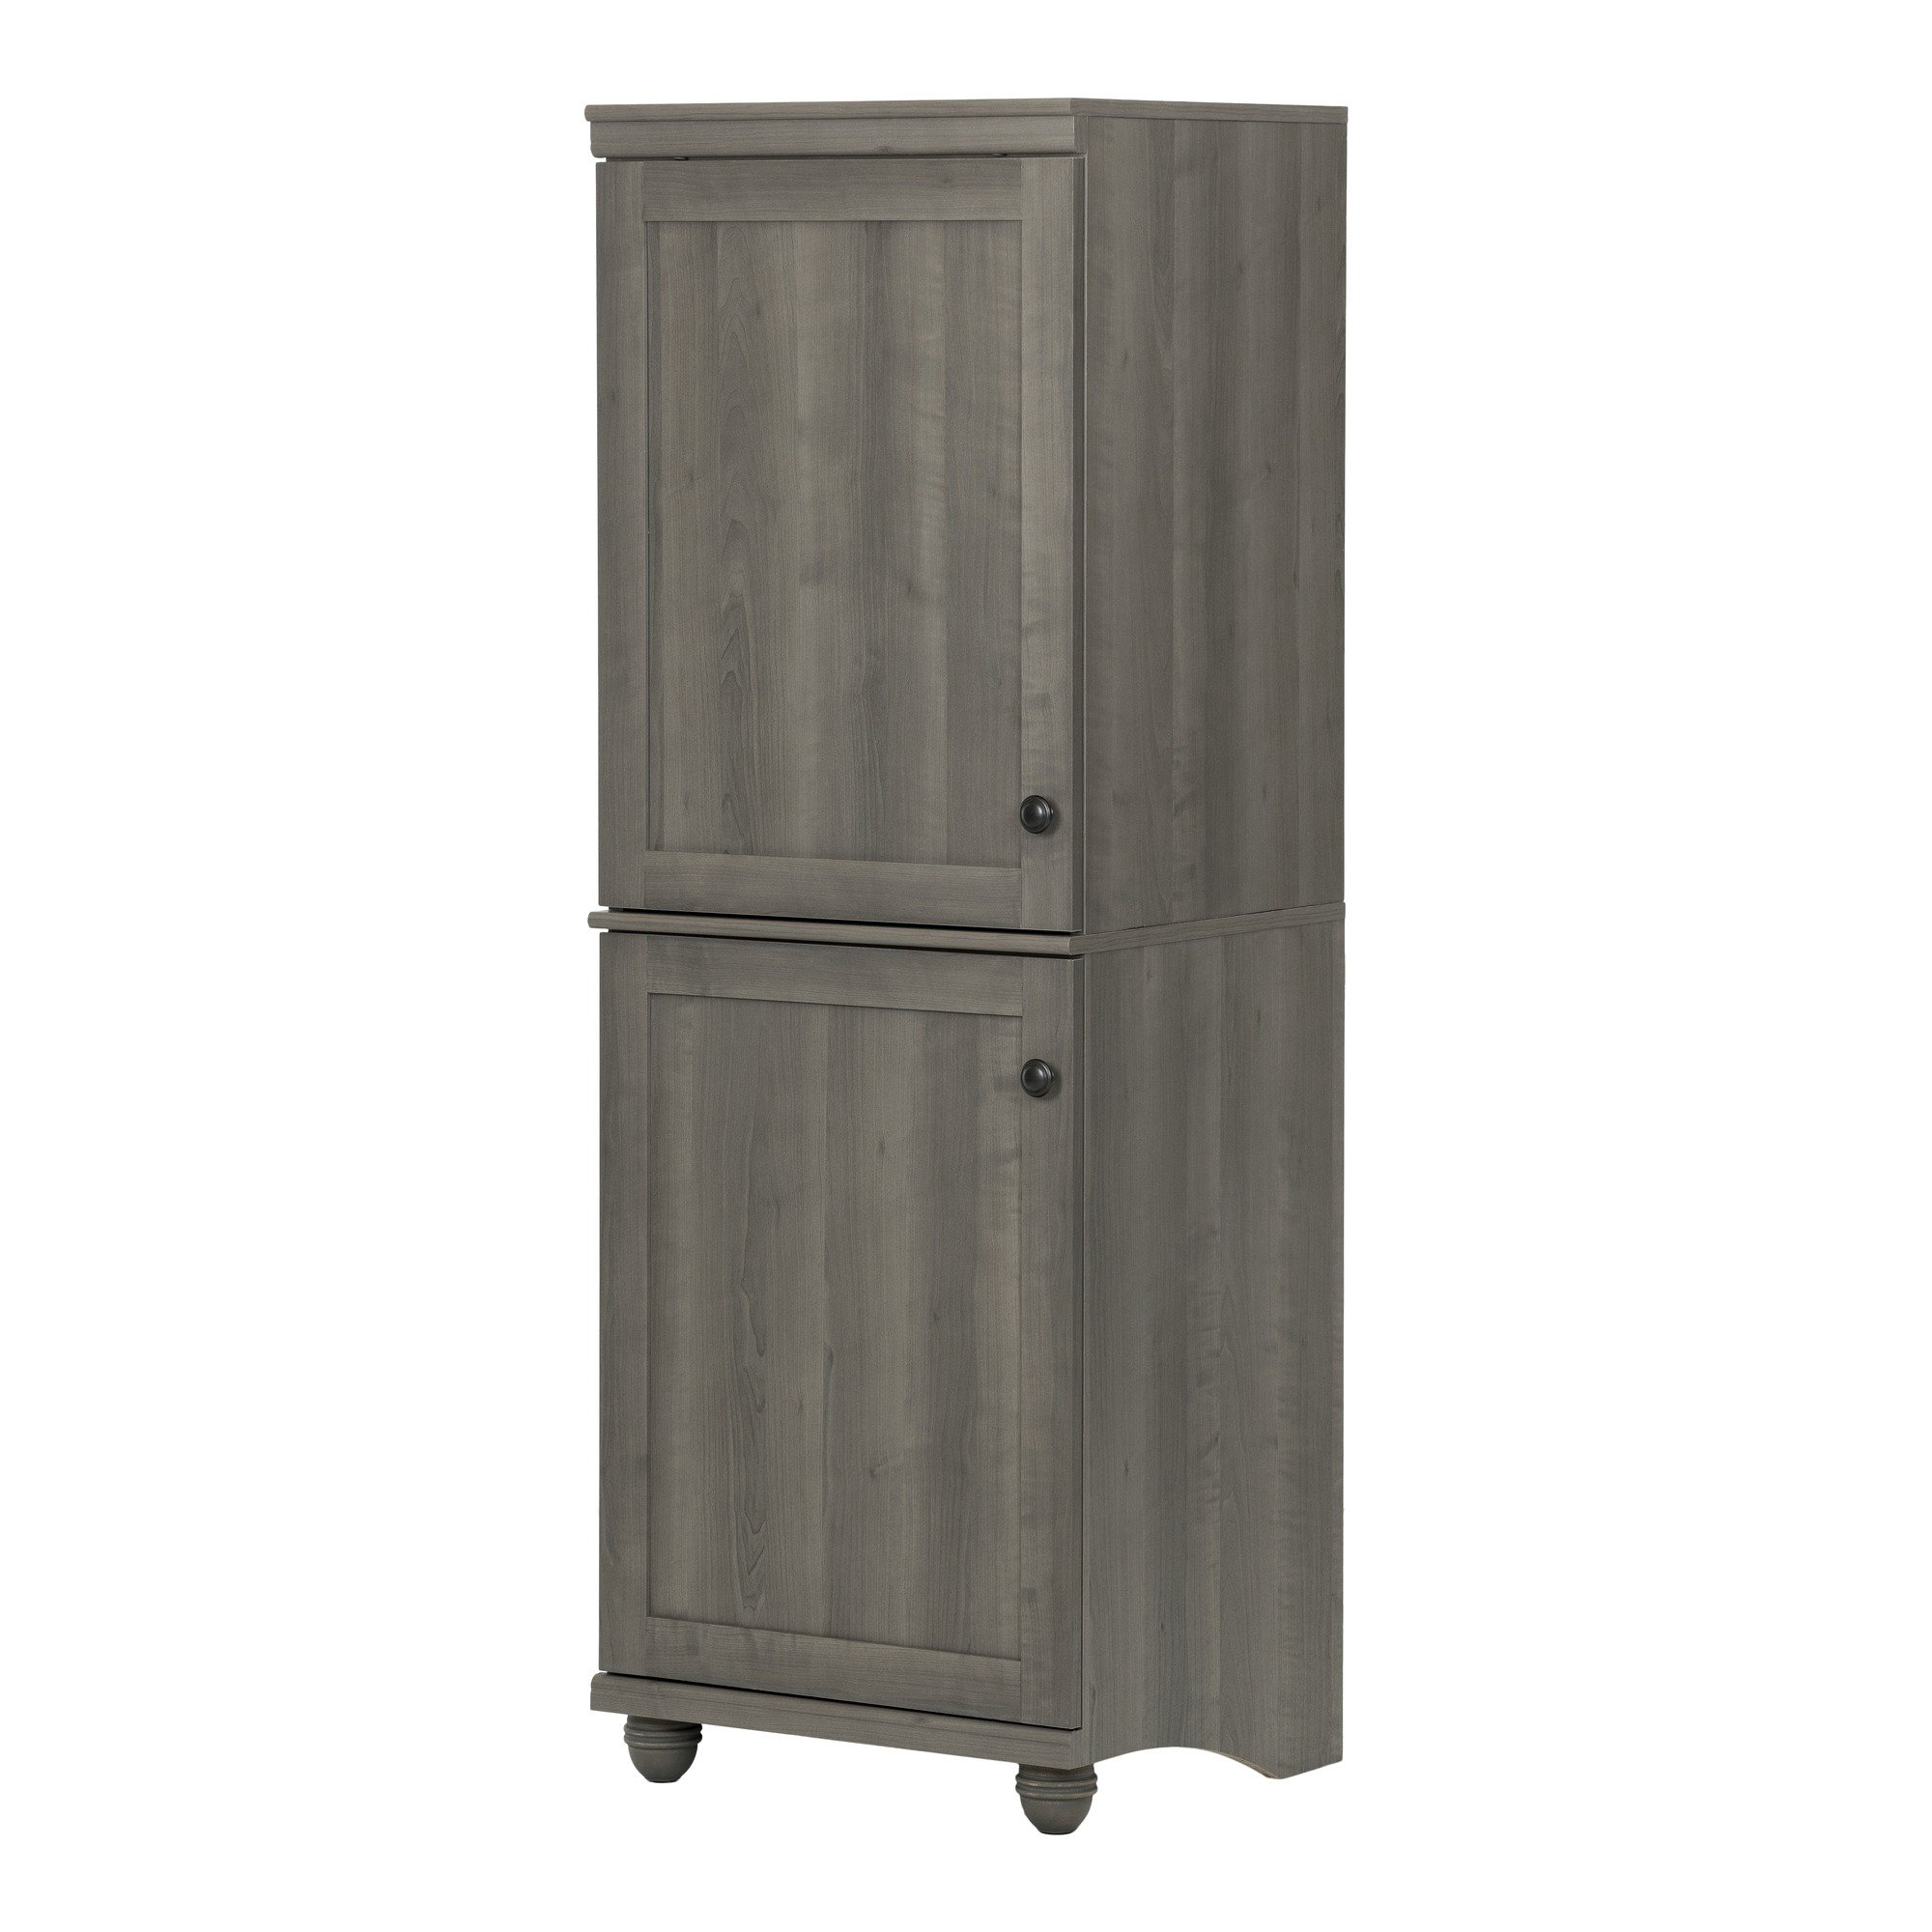 South Shore Hopedale Narrow 2-Door Storage Cabinet, Gray Maple by South Shore